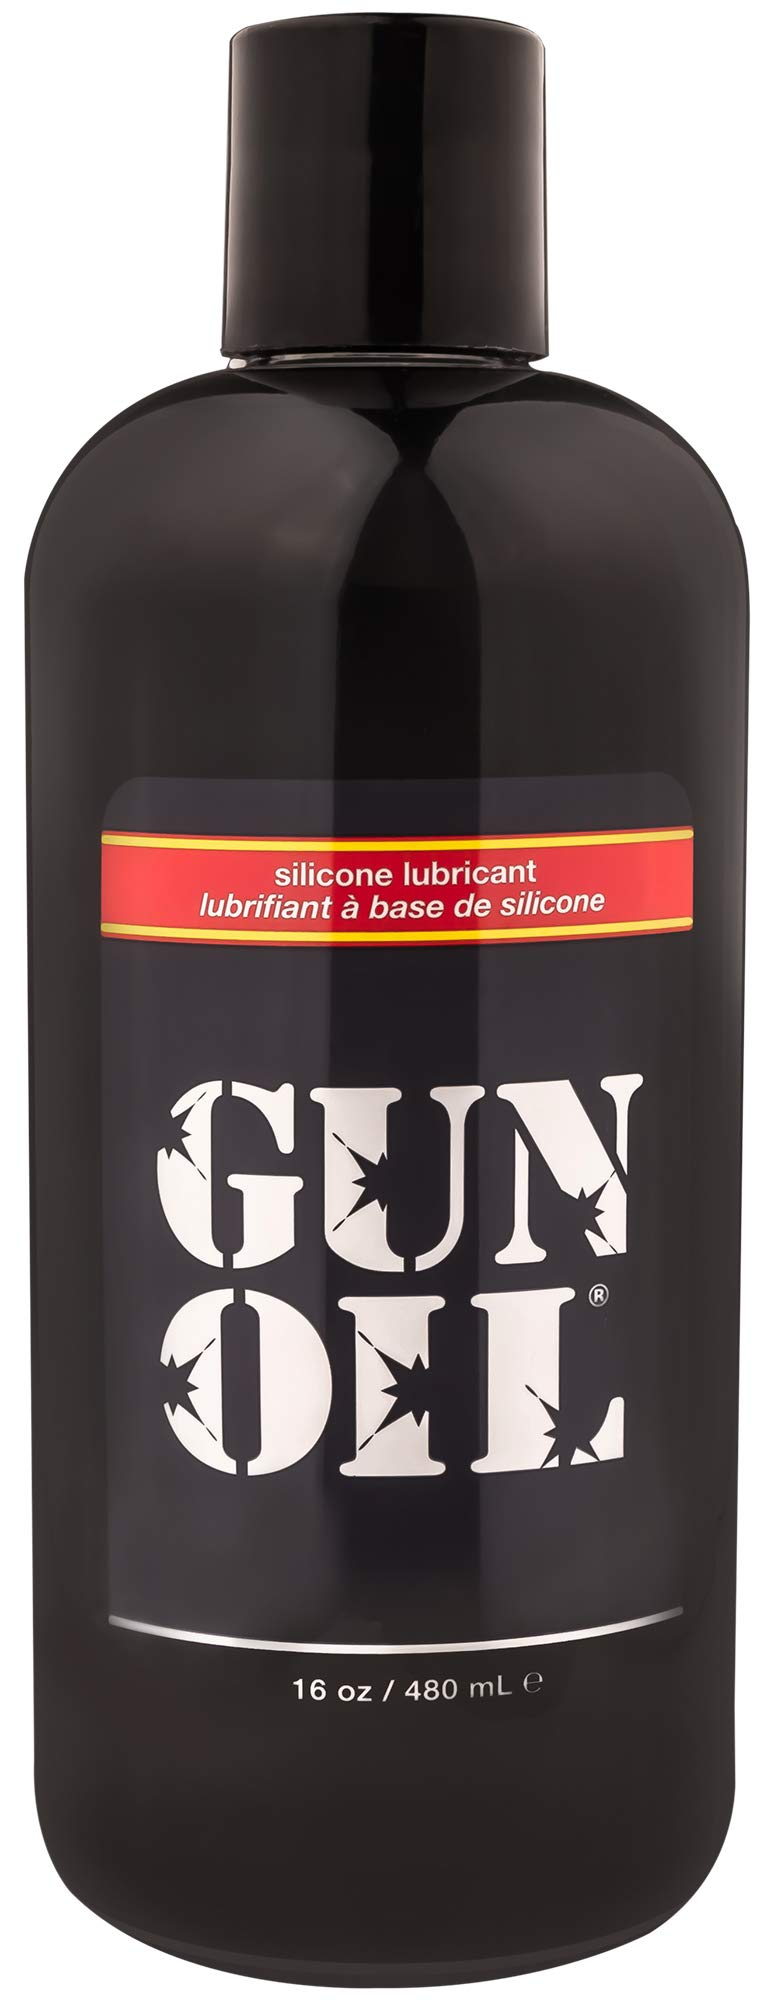 GUN OIL Silicone Lubricant - Hypoallergenic Silicone-Based Lubricant for Long-Lasting Lubrication (16 oz) by Gun Oil